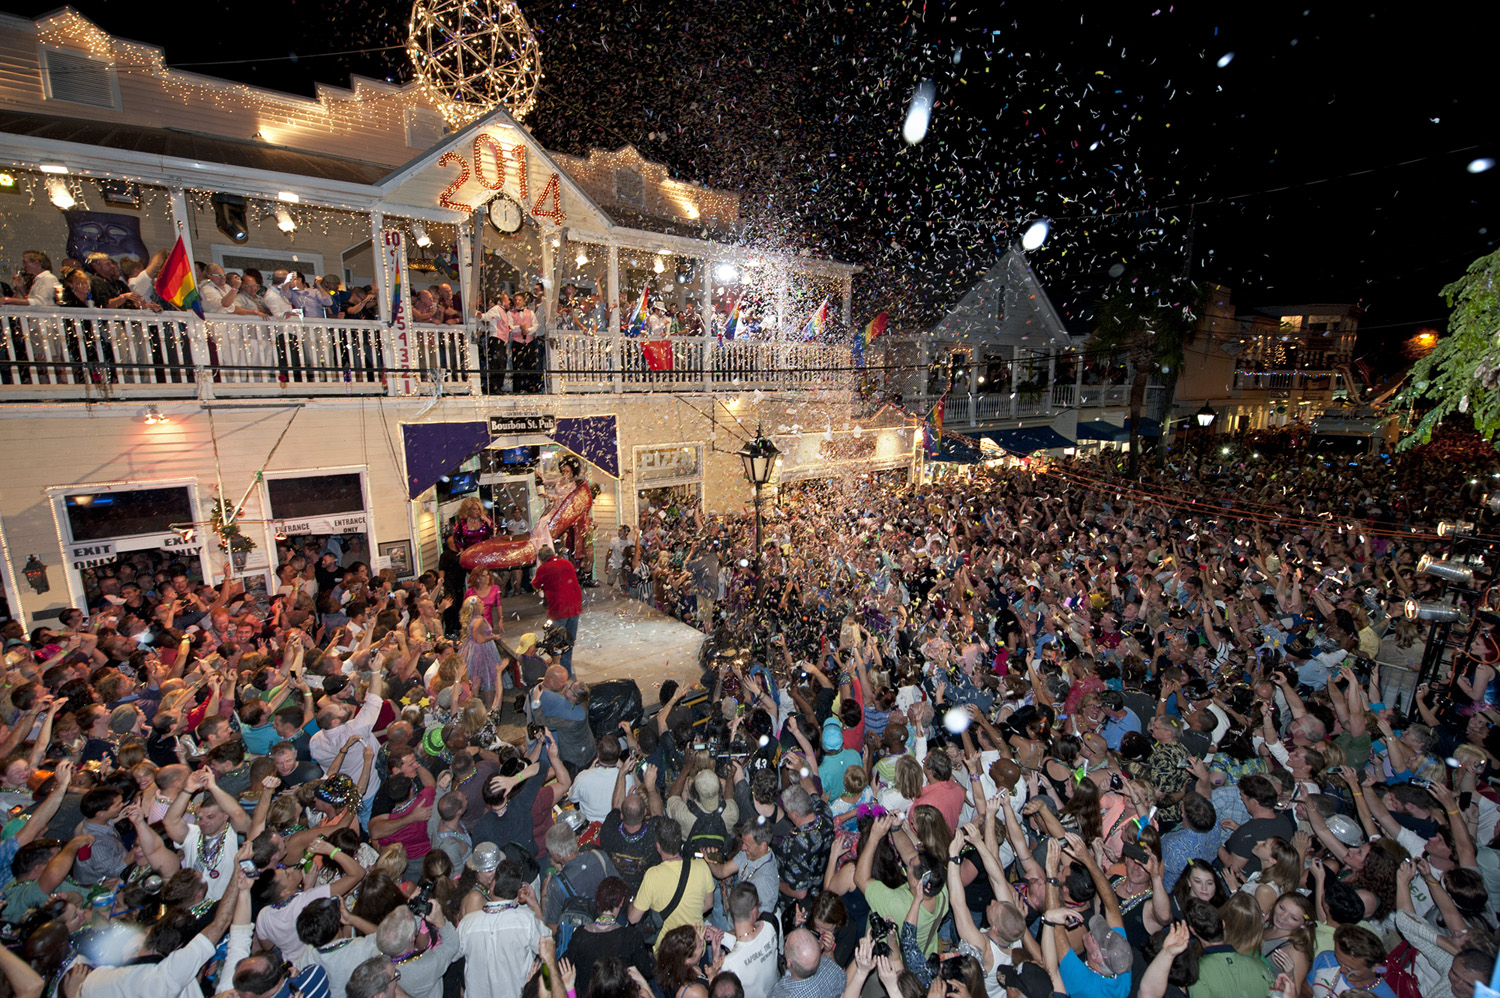 New Year's Eve in Key West